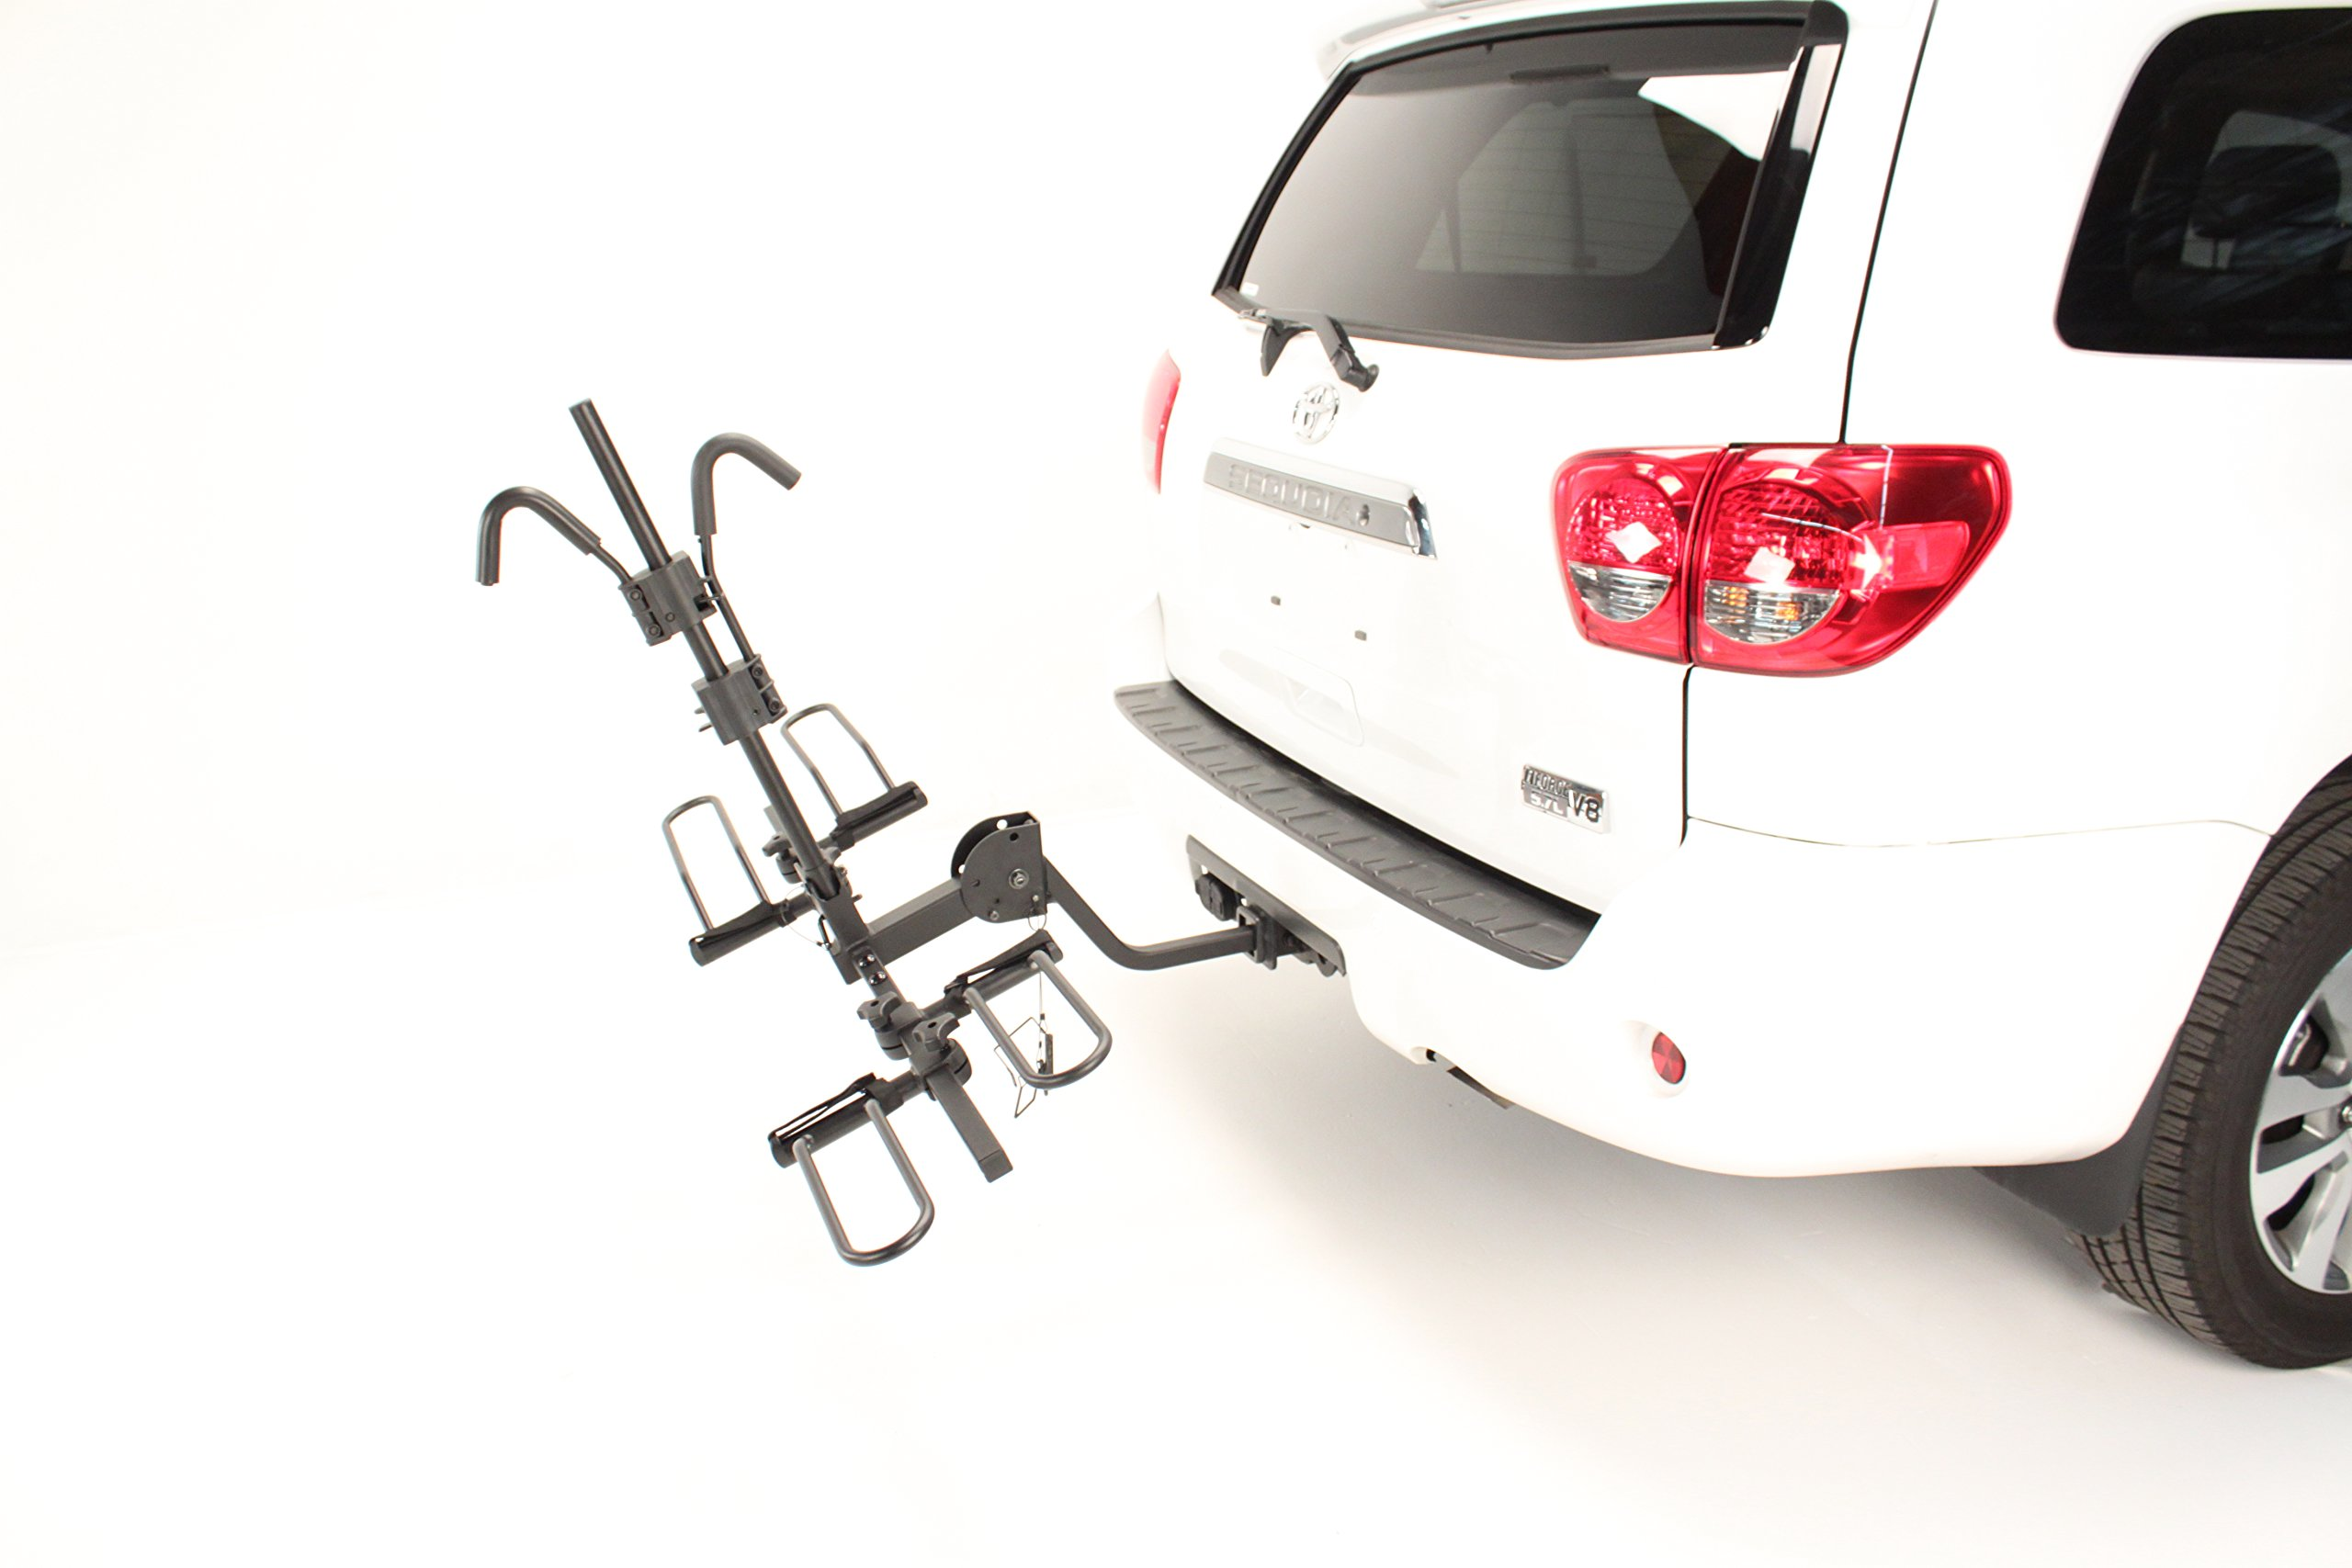 Hollywood Racks HR1000 Sport Rider 2-Bike Platform Style Hitch Mount Rack (1.25 and 2-Inch Receiver) by Hollywood Racks (Image #3)